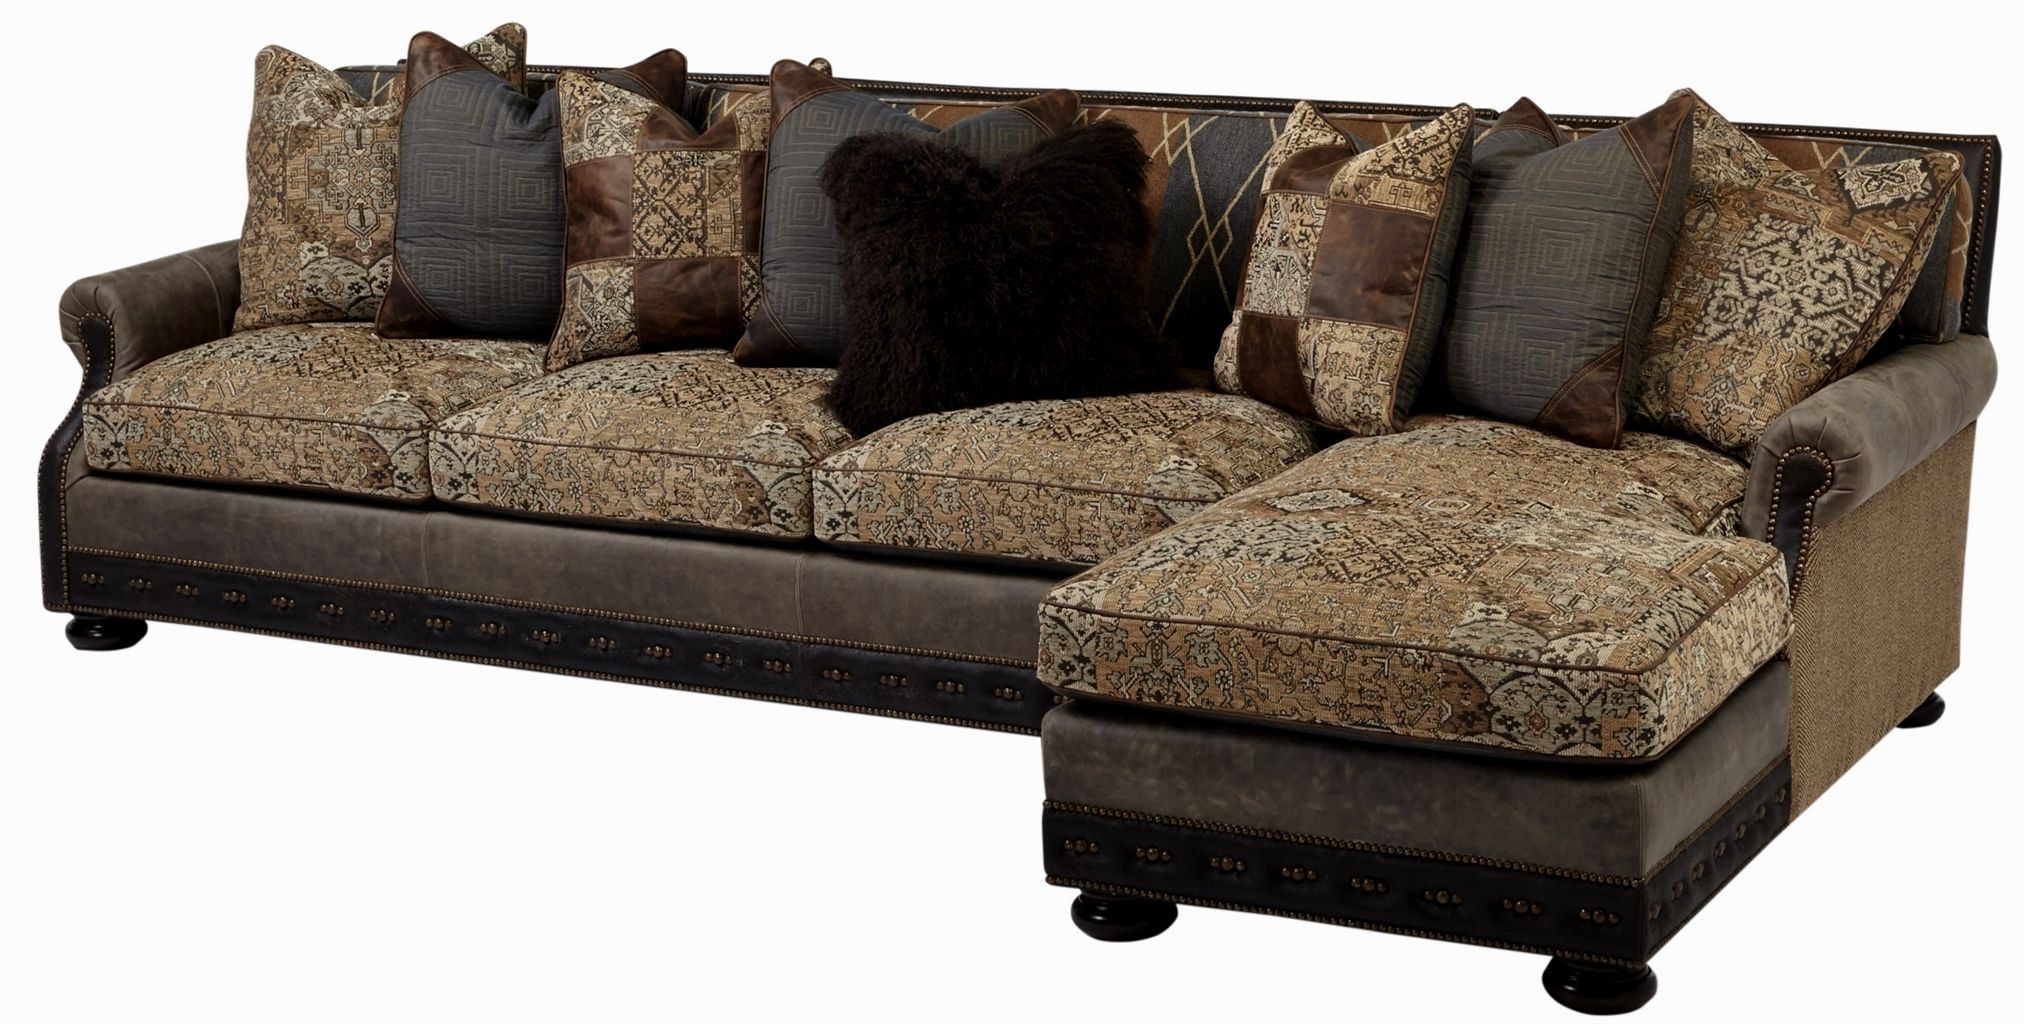 cool flexsteel leather sofa model-Fantastic Flexsteel Leather sofa Architecture